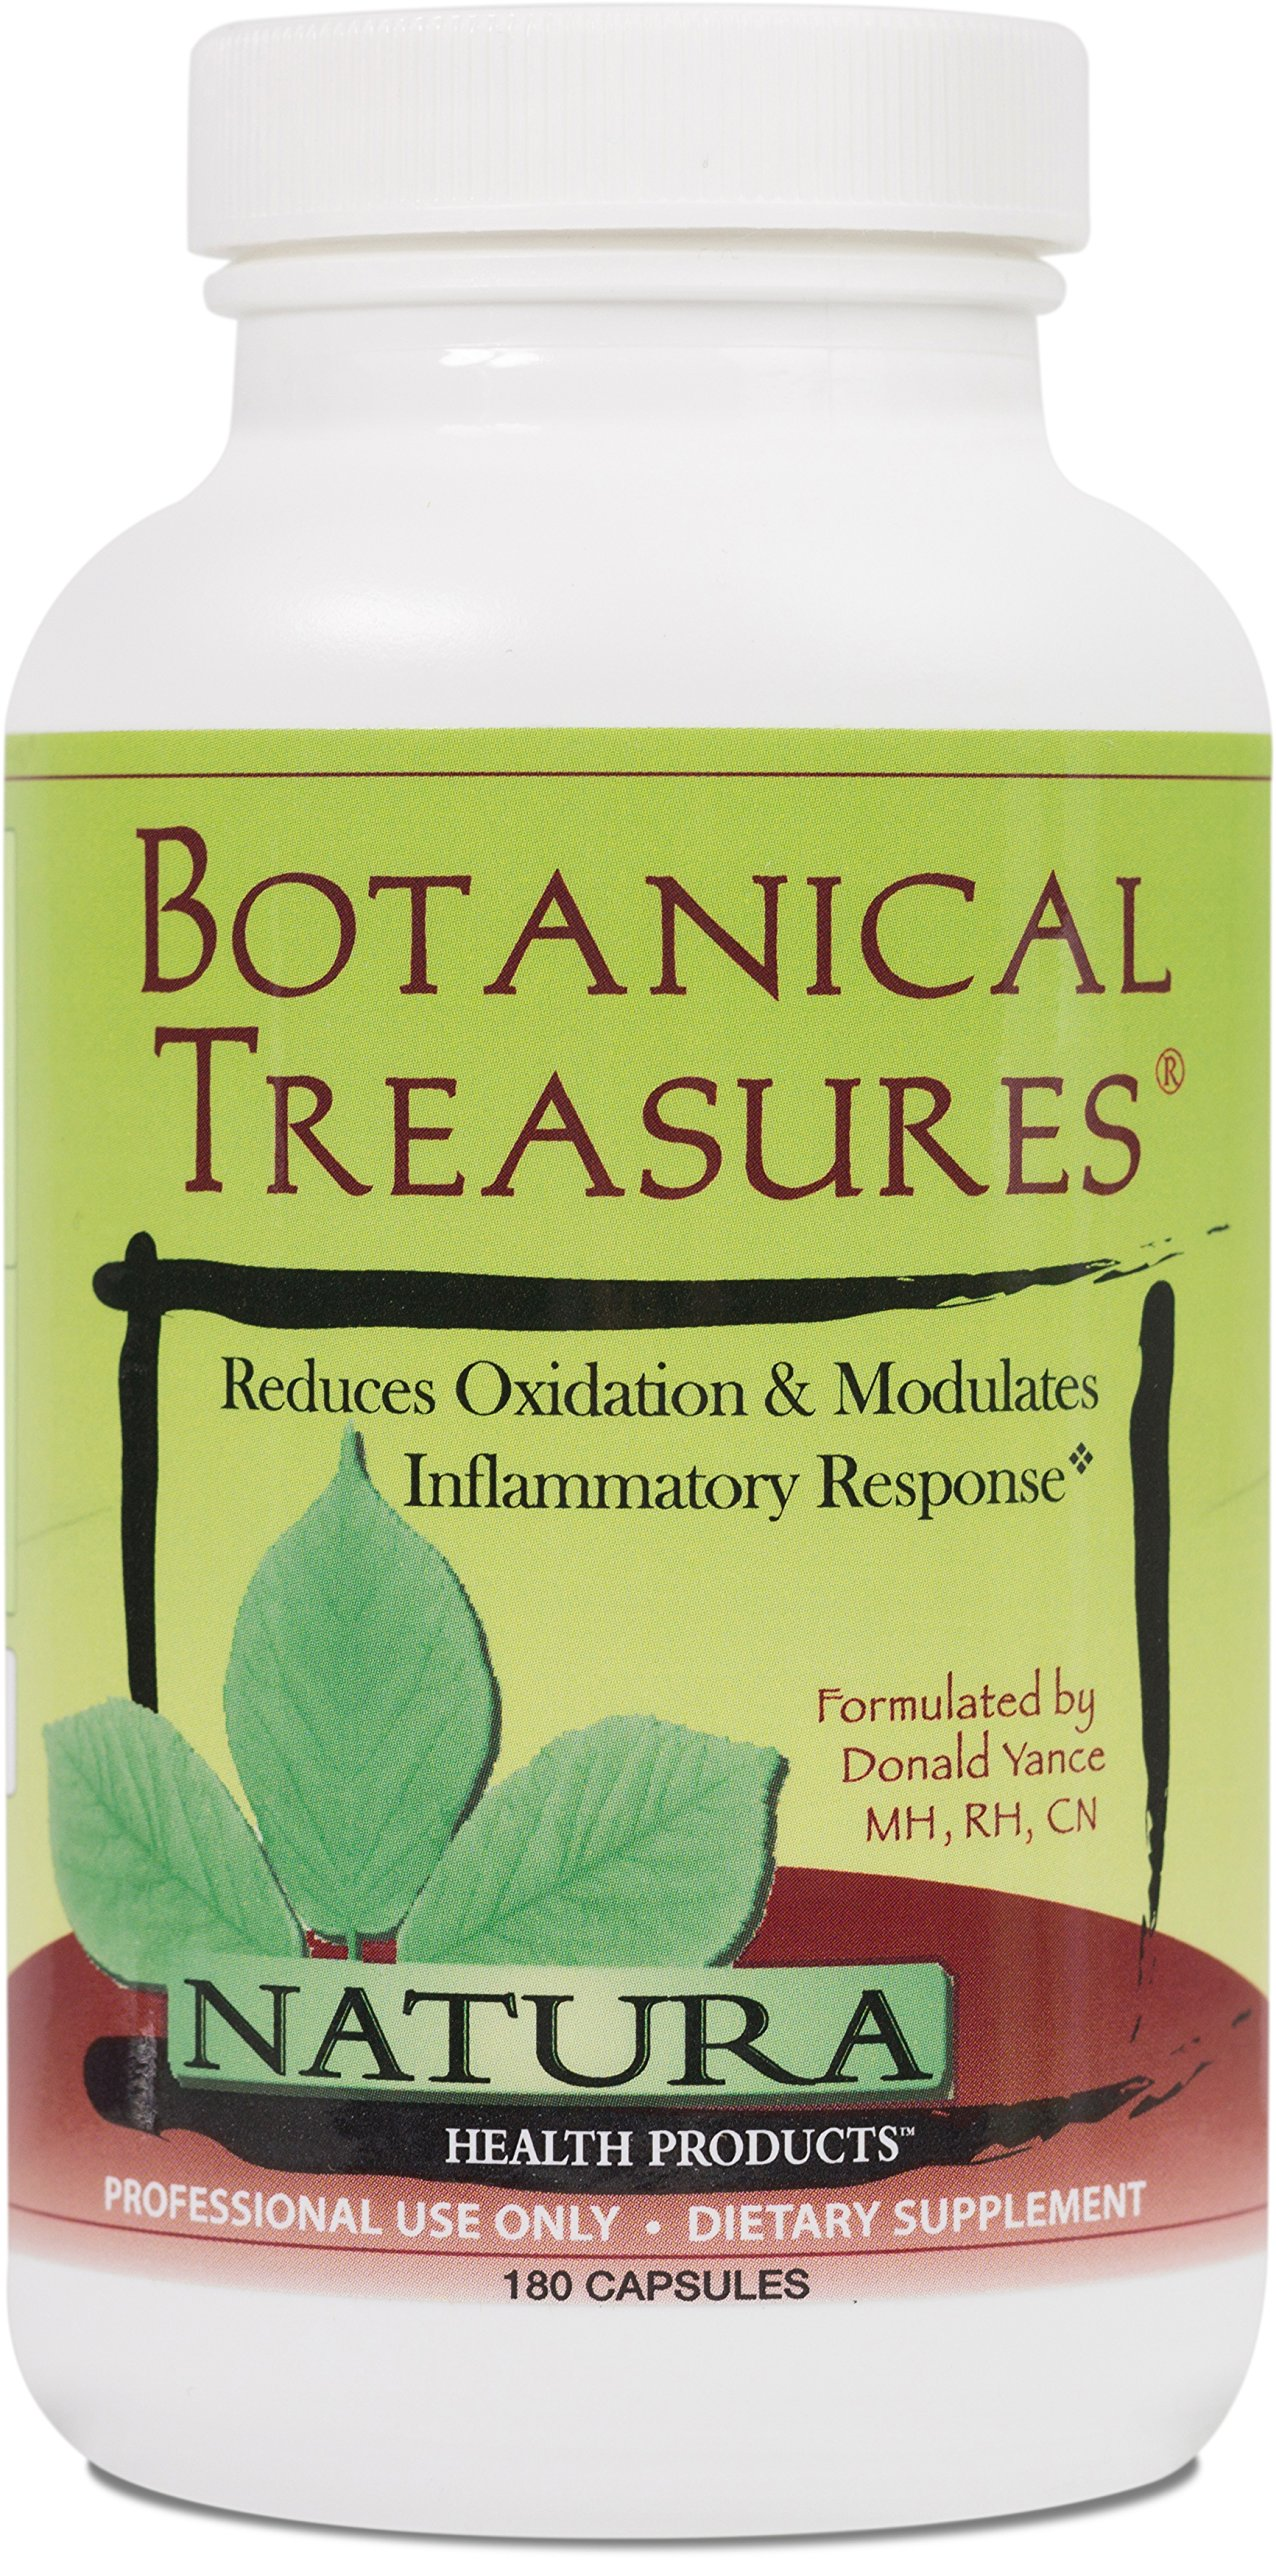 Natura Health Products - Botanical Treasures - Featuring Turmeric, Resveratrol, and Green Tea Reduces Oxidation and Modulates Inflammatory Response - 180 Capsules